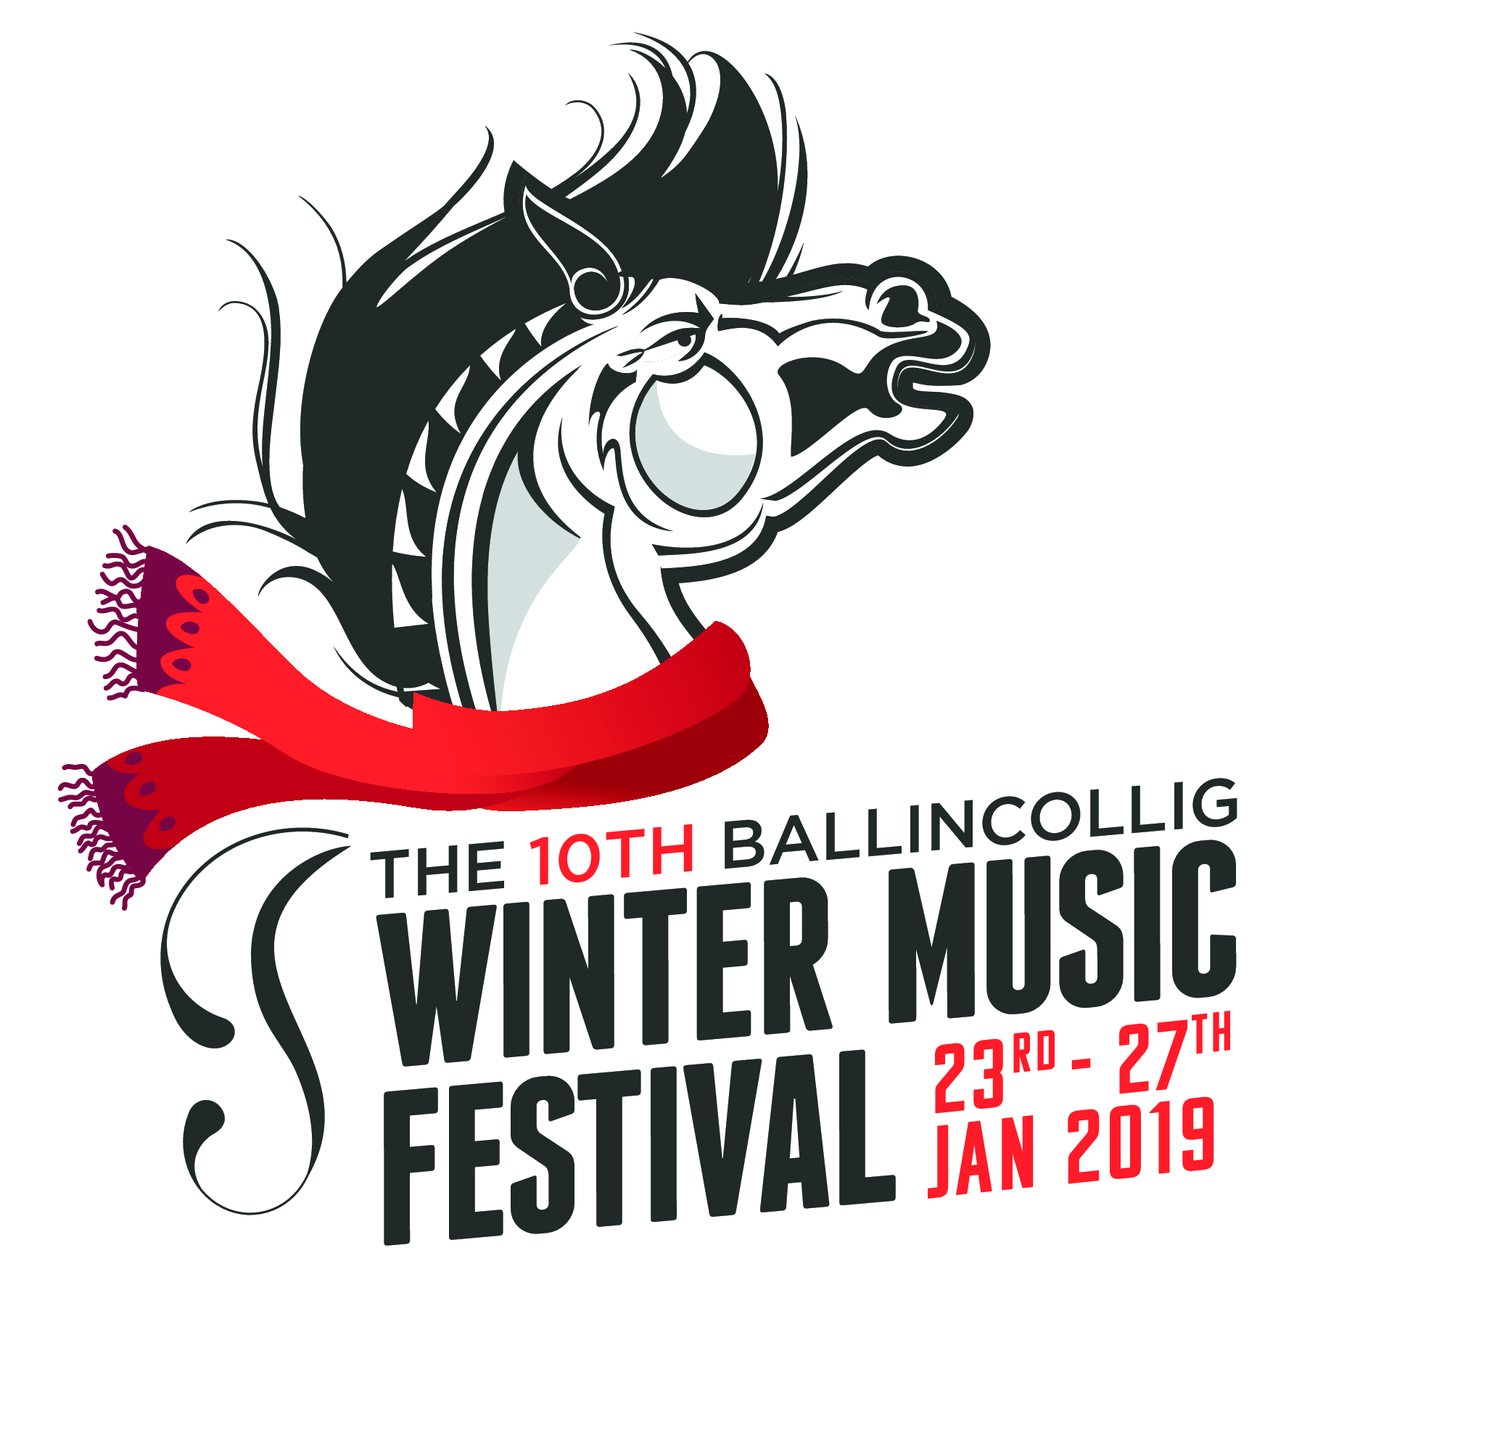 The Ballincollig Winter Music Festival